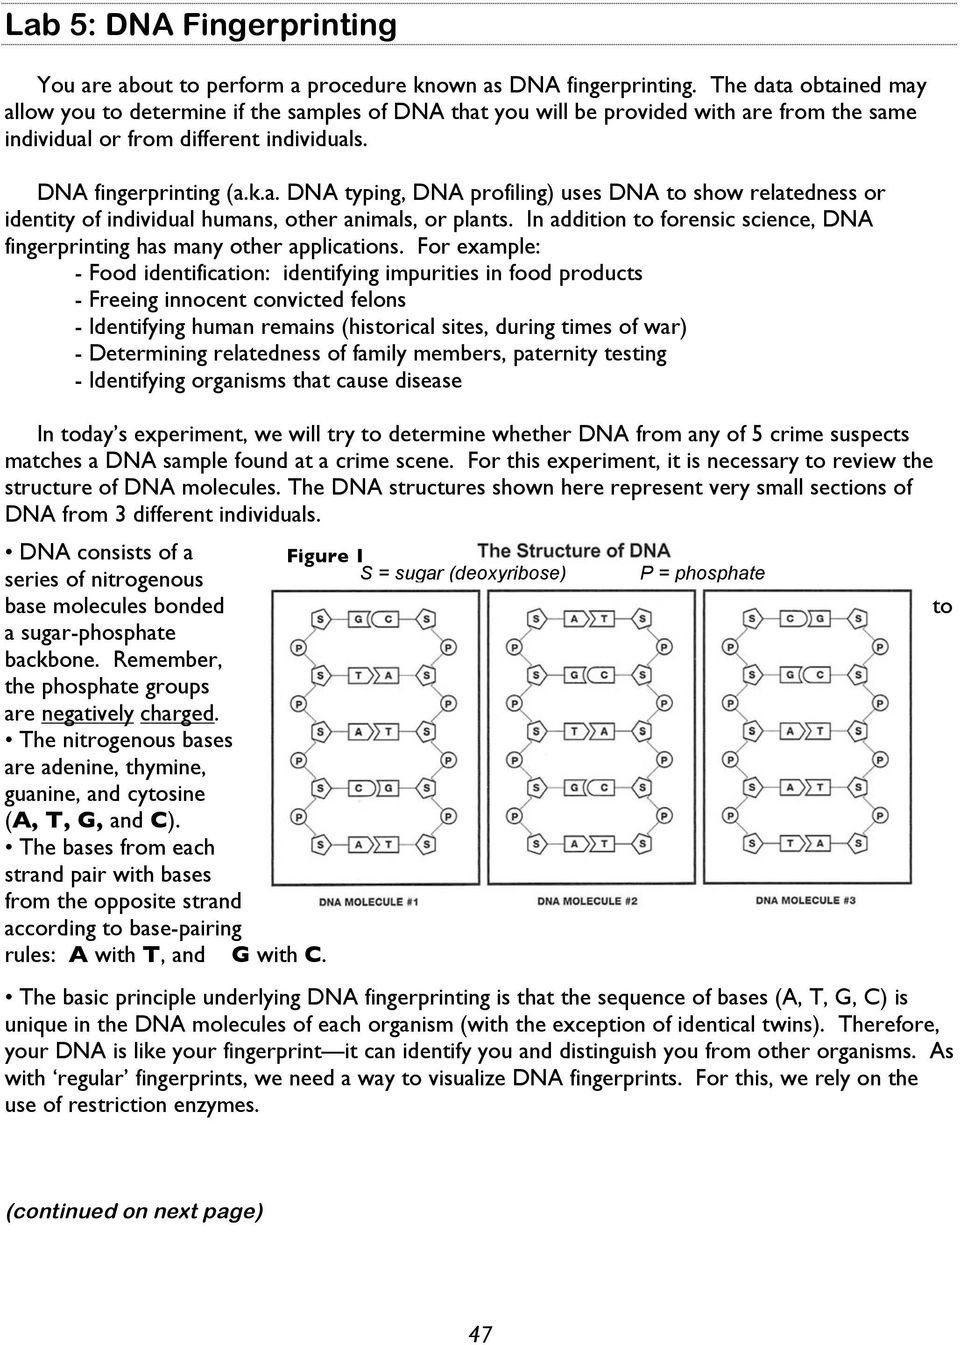 Dna Fingerprint Worksheet Answers Lab 5 Dna Fingerprinting Pdf Free Download In 2020 Dna Fingerprinting Text Features Worksheet Graphing Linear Equations